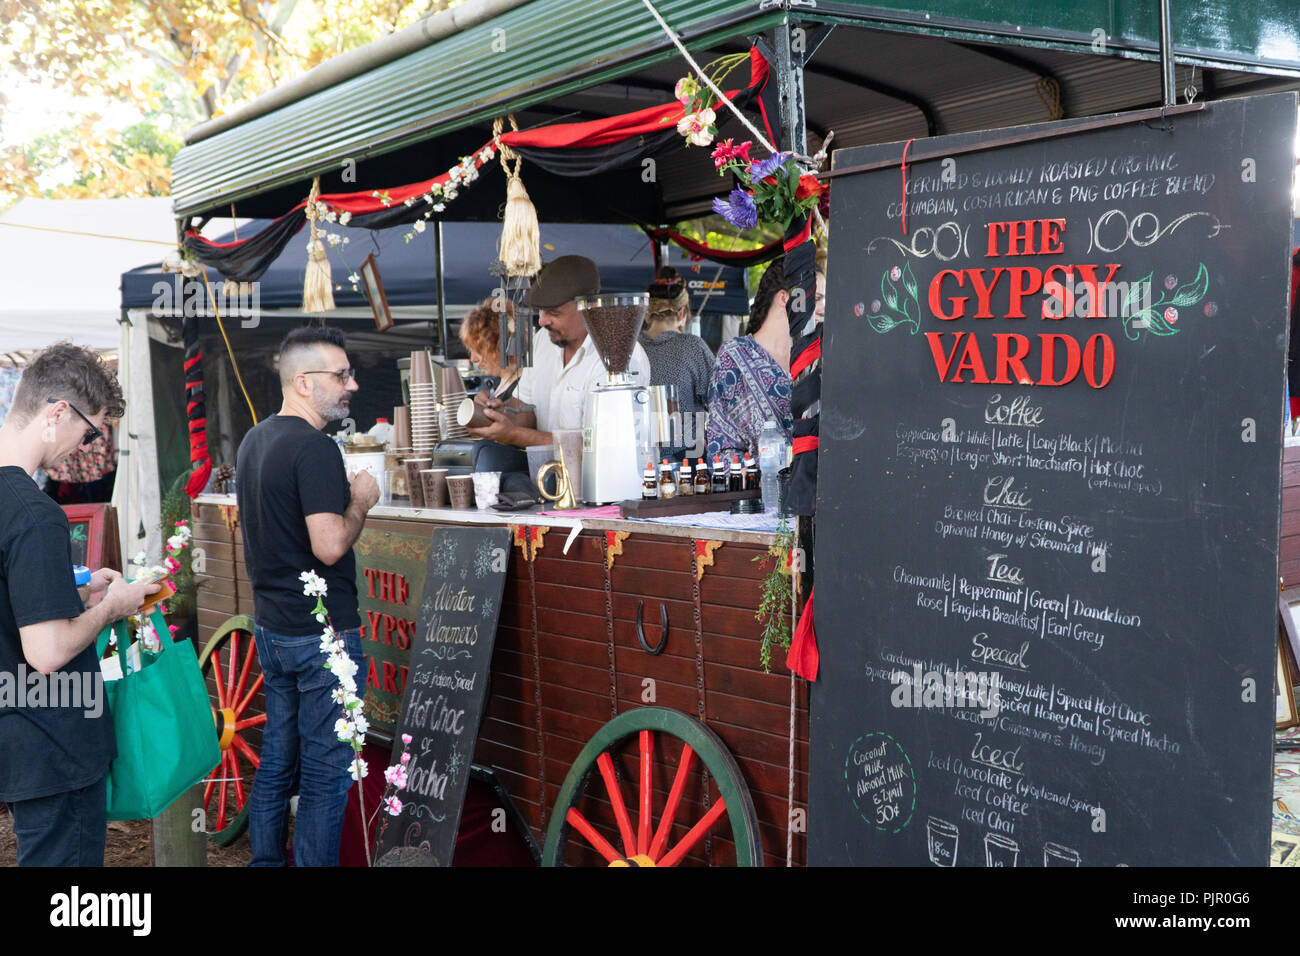 Coffee sale from a gypsy car at a market in Brisbane, West End - Stock Image